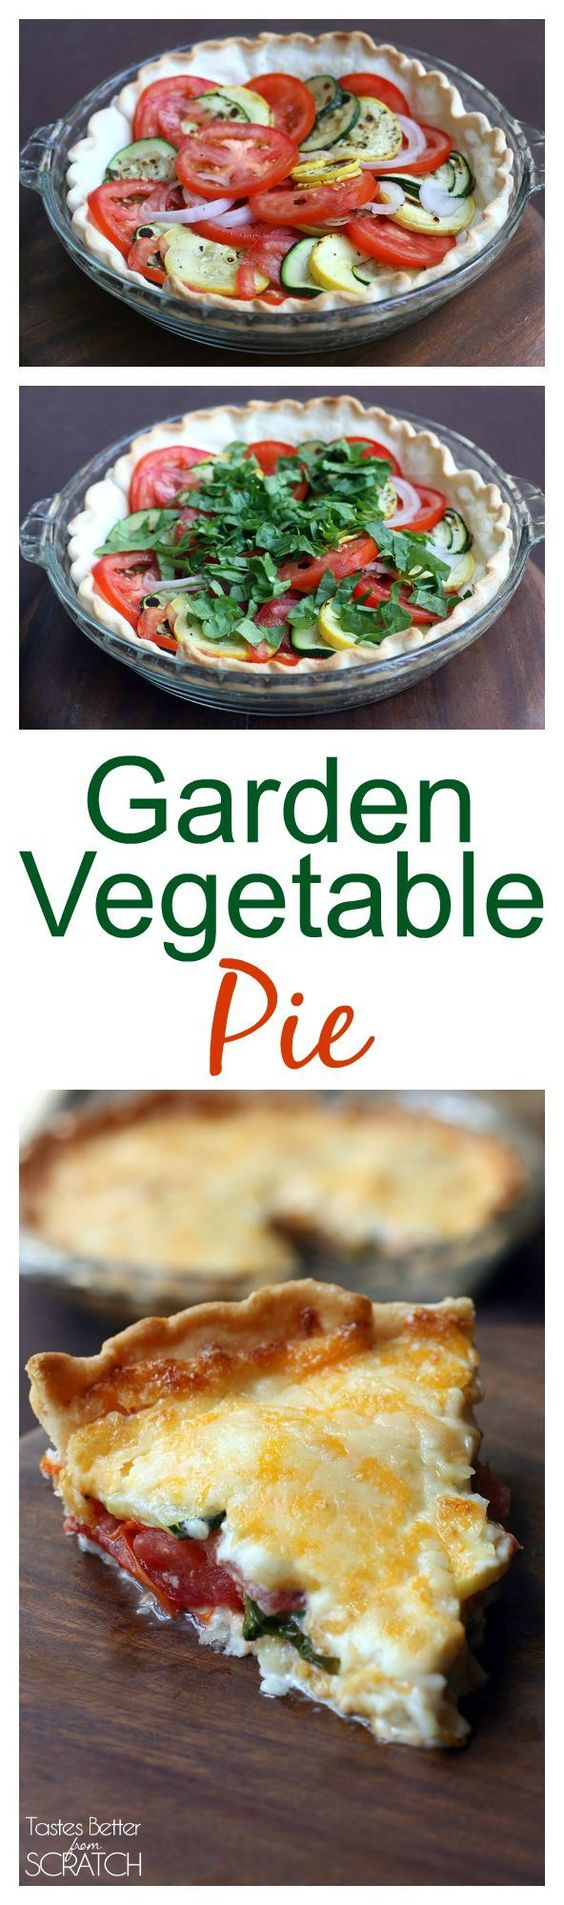 Vegetable pie, Zucchini squash and Vegetables on Pinterest